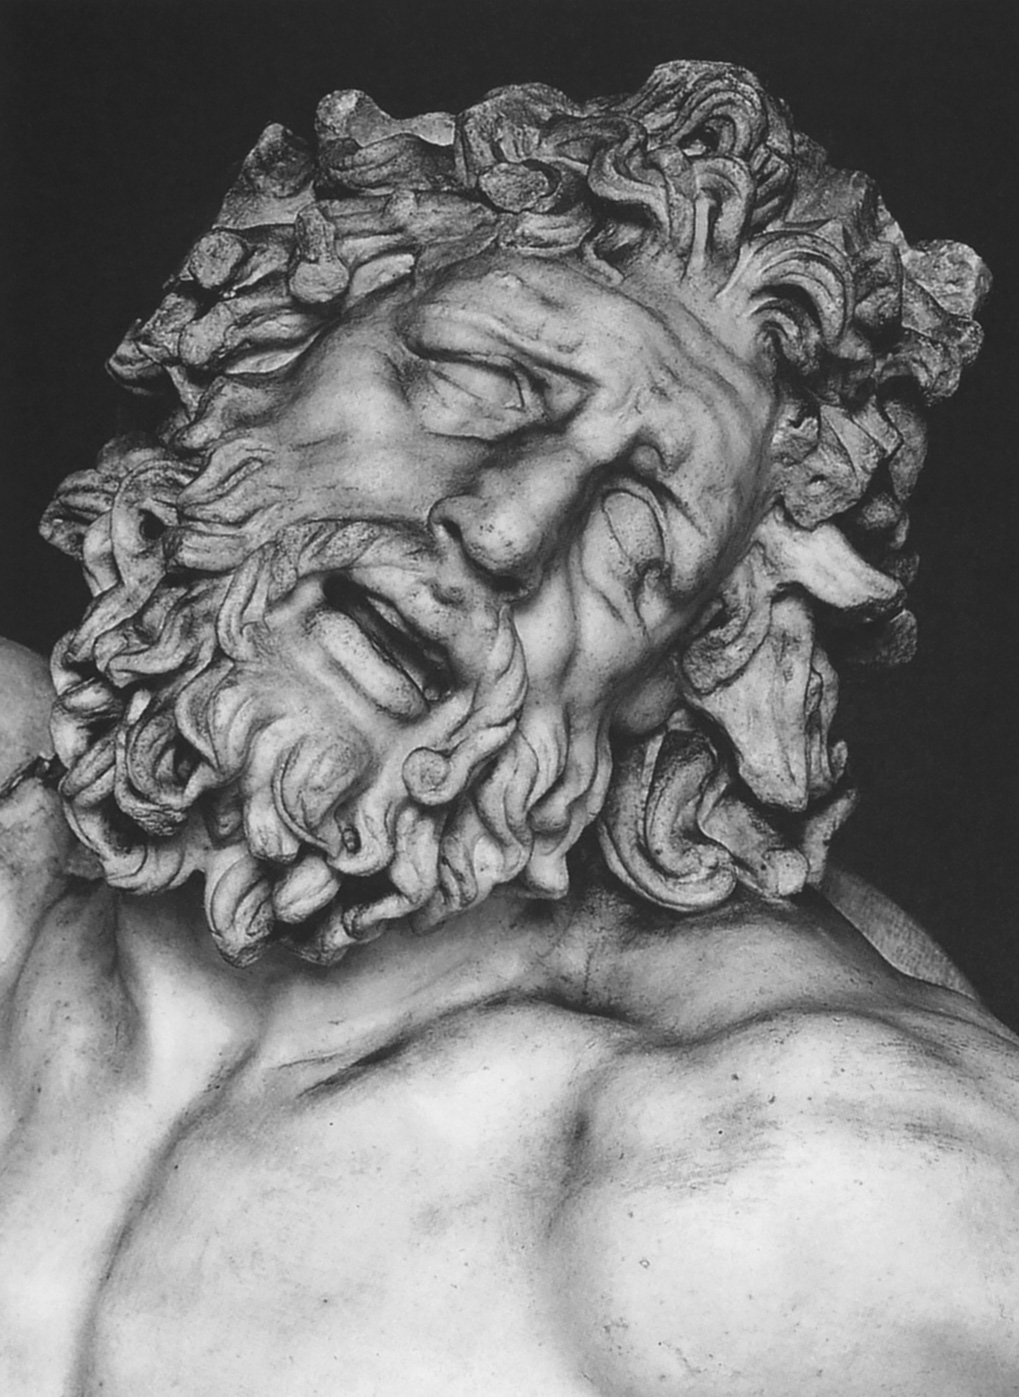 The Laocoon group. Detail: the head of Laocoon. Marble. 1st century BCE. Inv. No. 1059. Rome, Vatican Museums, Pius-Clementine Museum, Octagonal Court, Laocoon Cabinet, 2